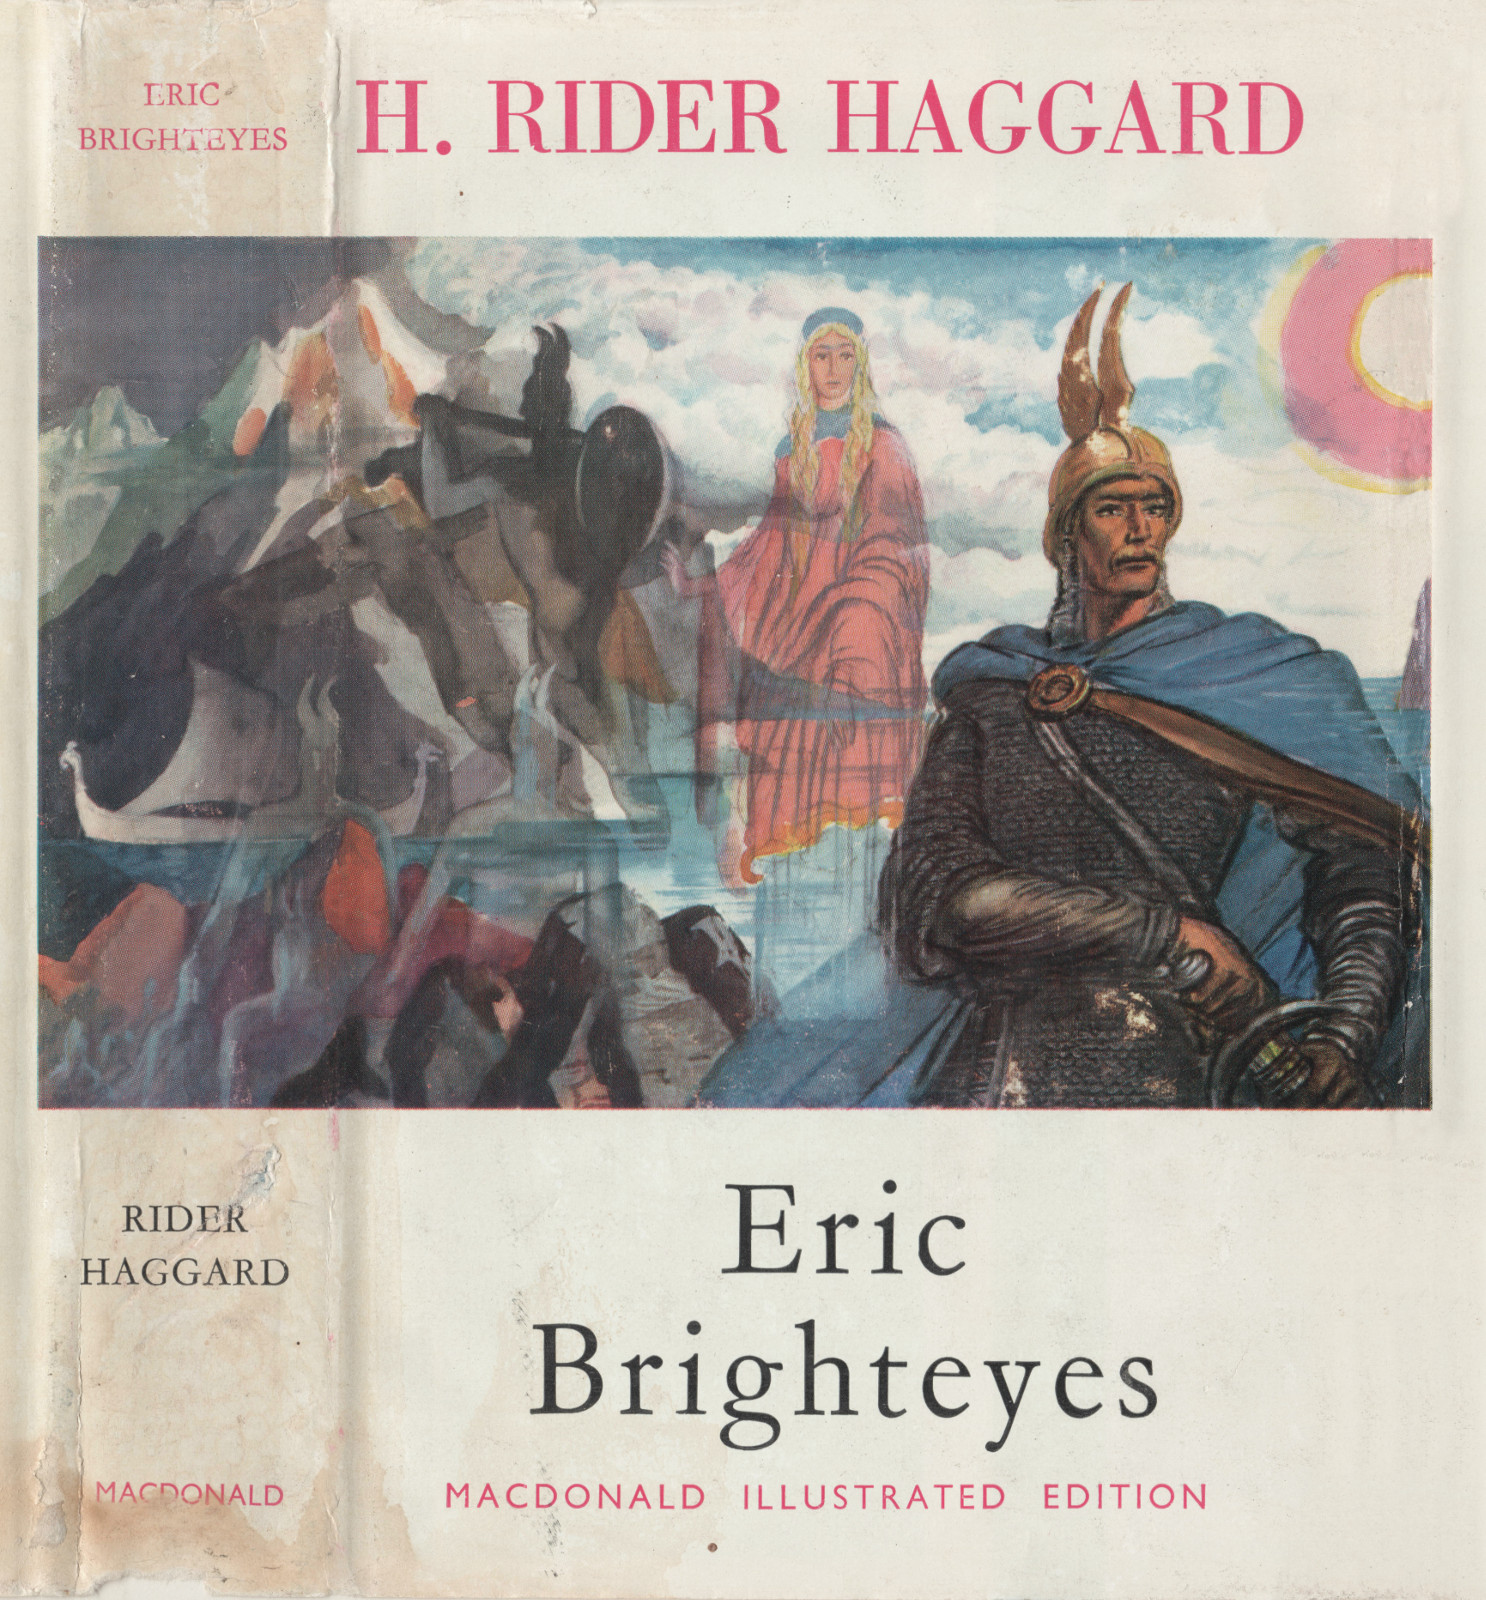 Ericbrighteyesmacdonalddustjacket